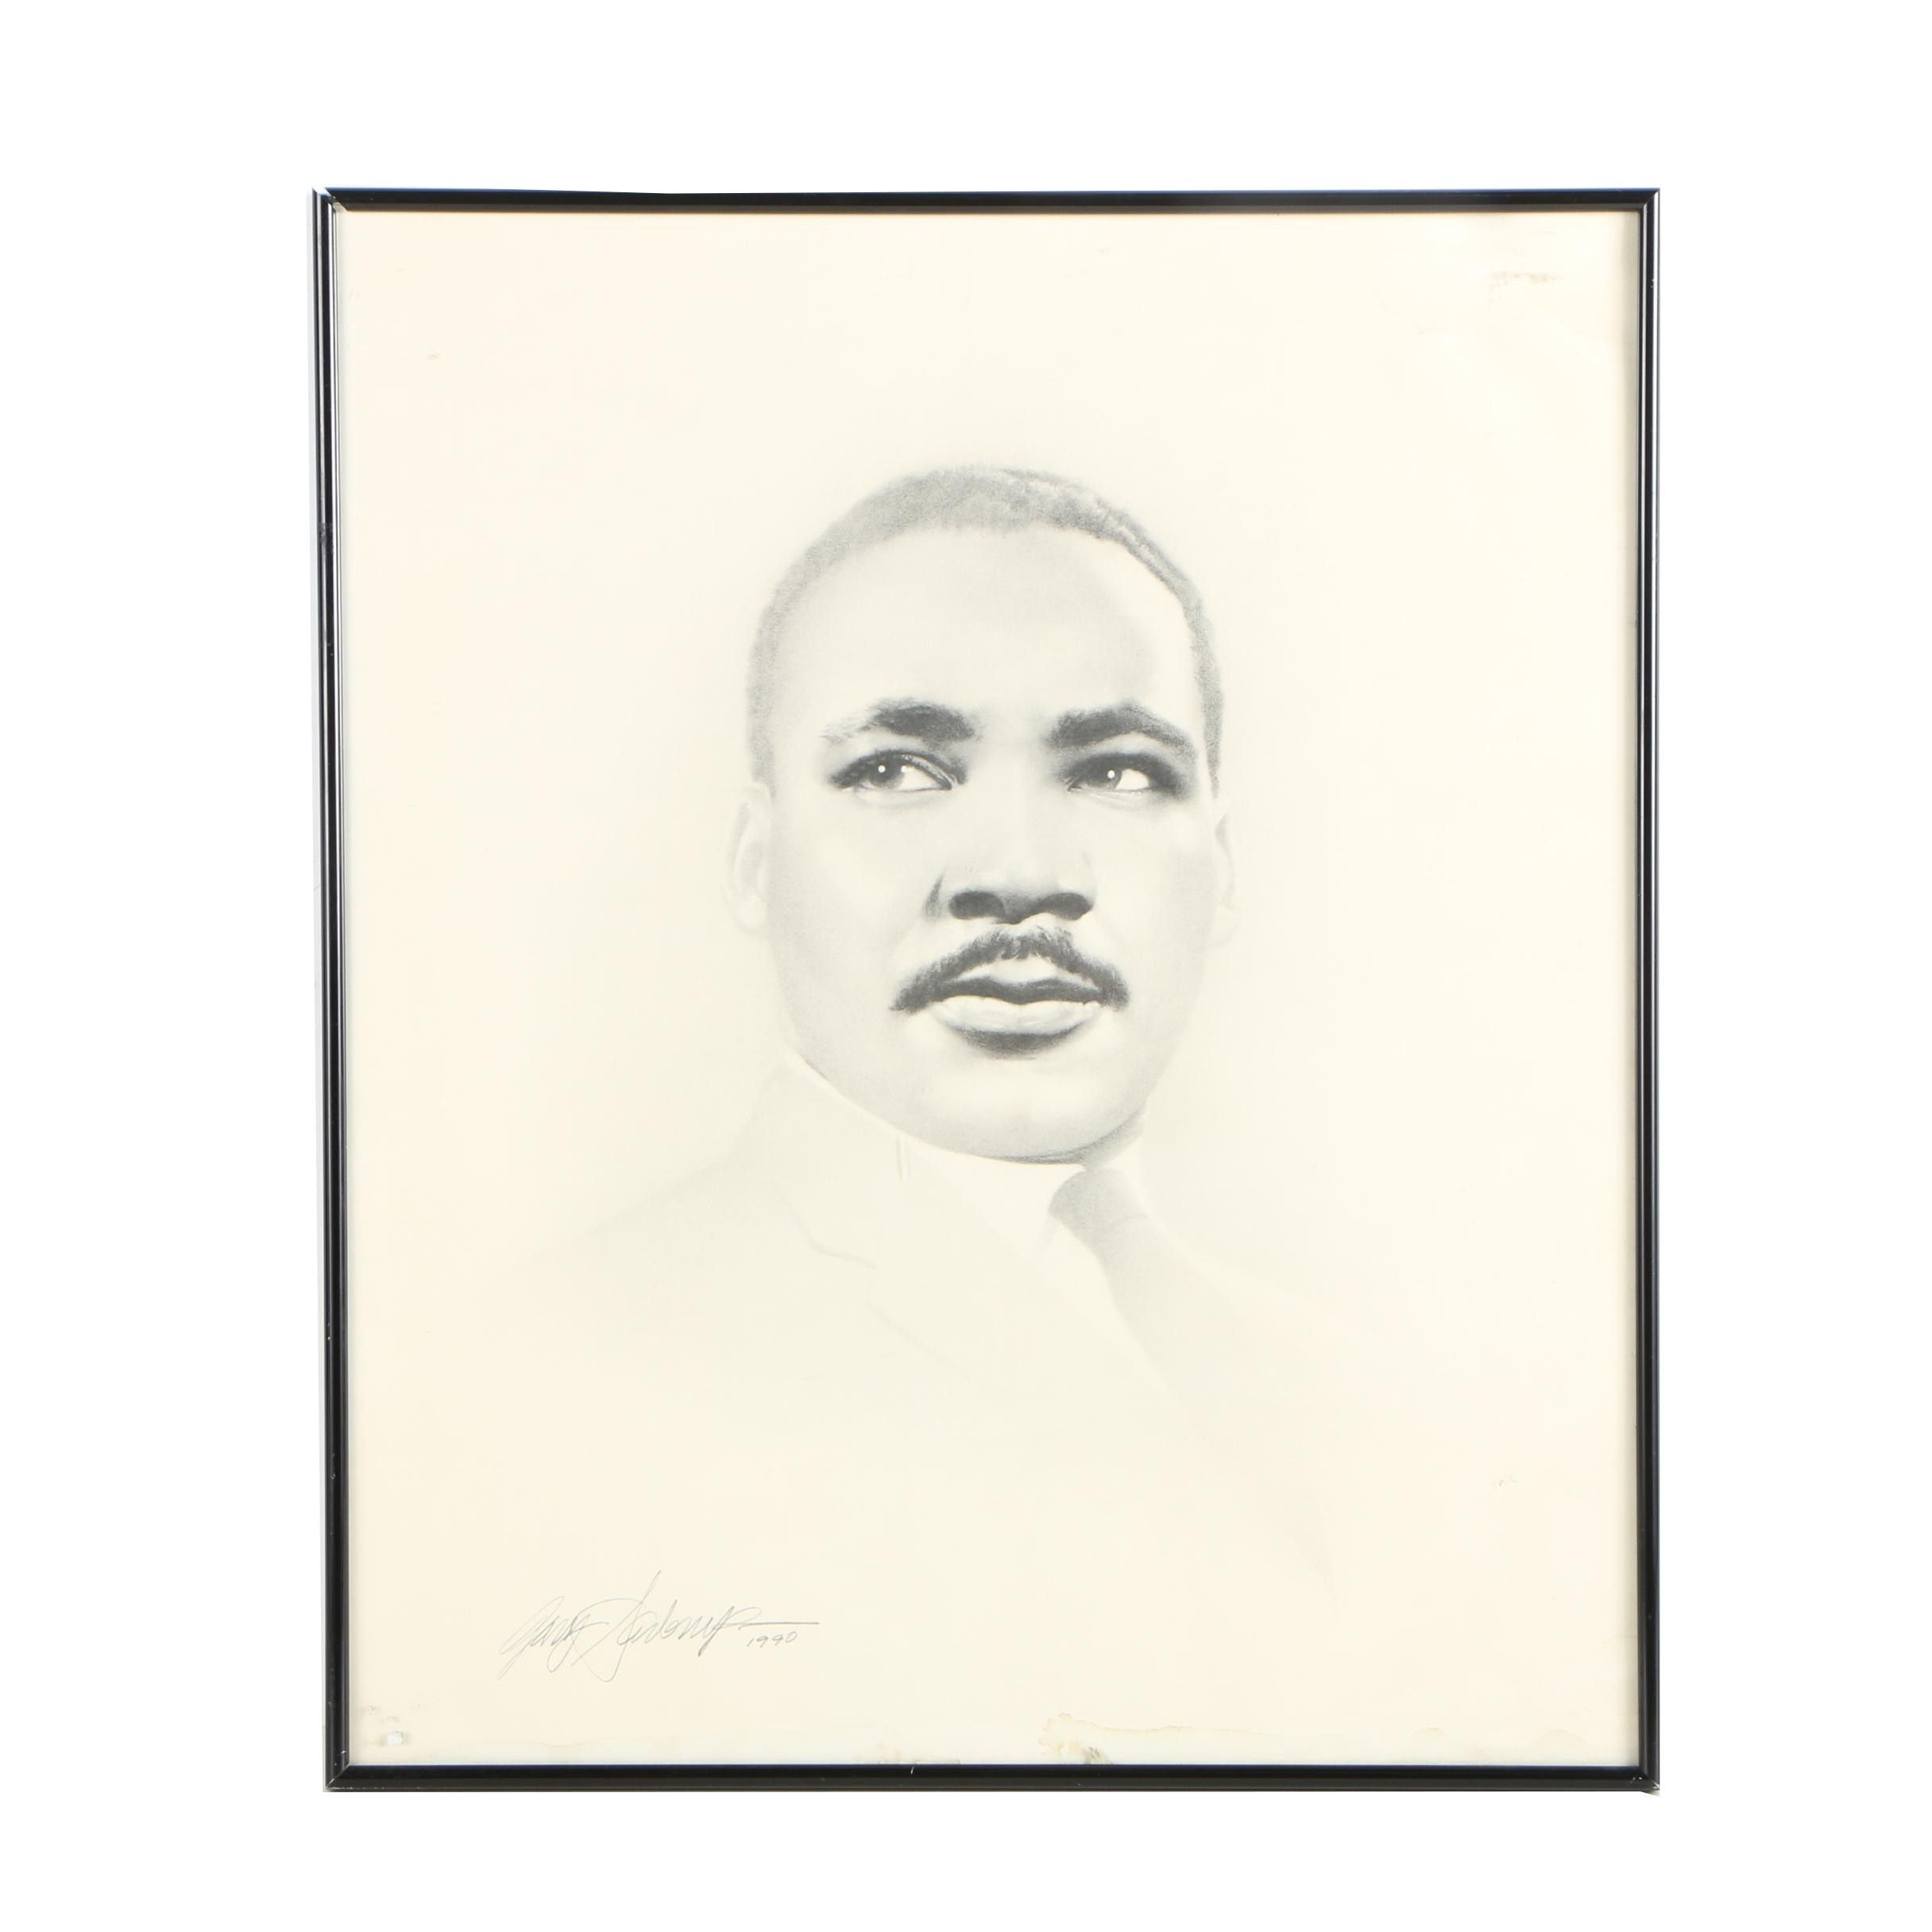 Signed 1990 Offset Lithograph After Gary Saderup of Martin Luther King Jr.